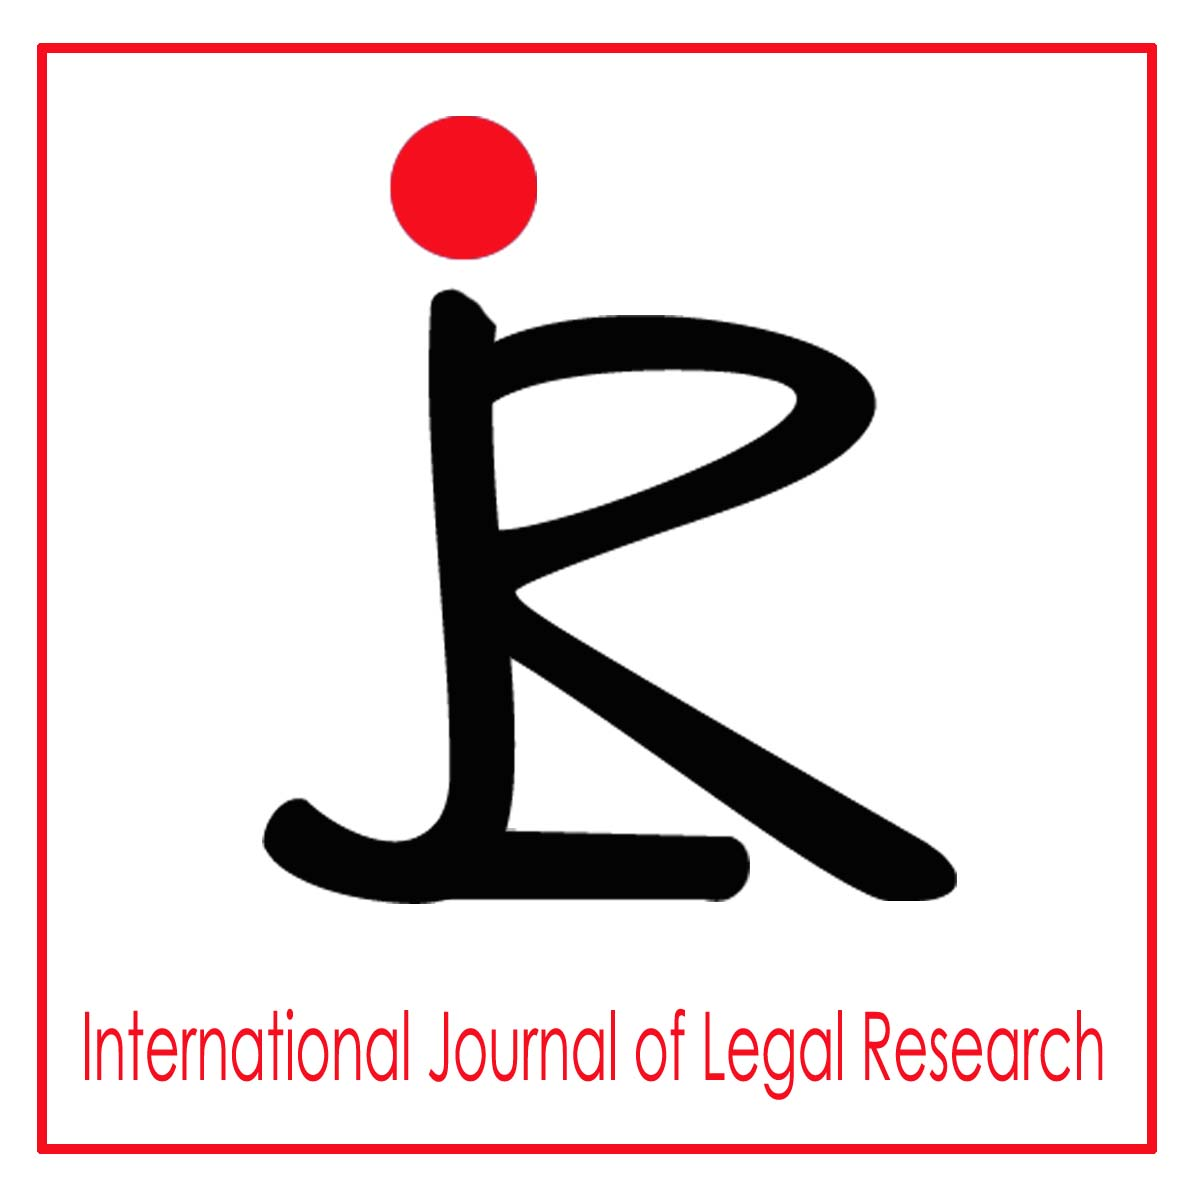 Call for Papers: International Journal of Legal Research Vol 3, Issue 4 [Pay Rs. 1500 for Publication]: Submit by July 5